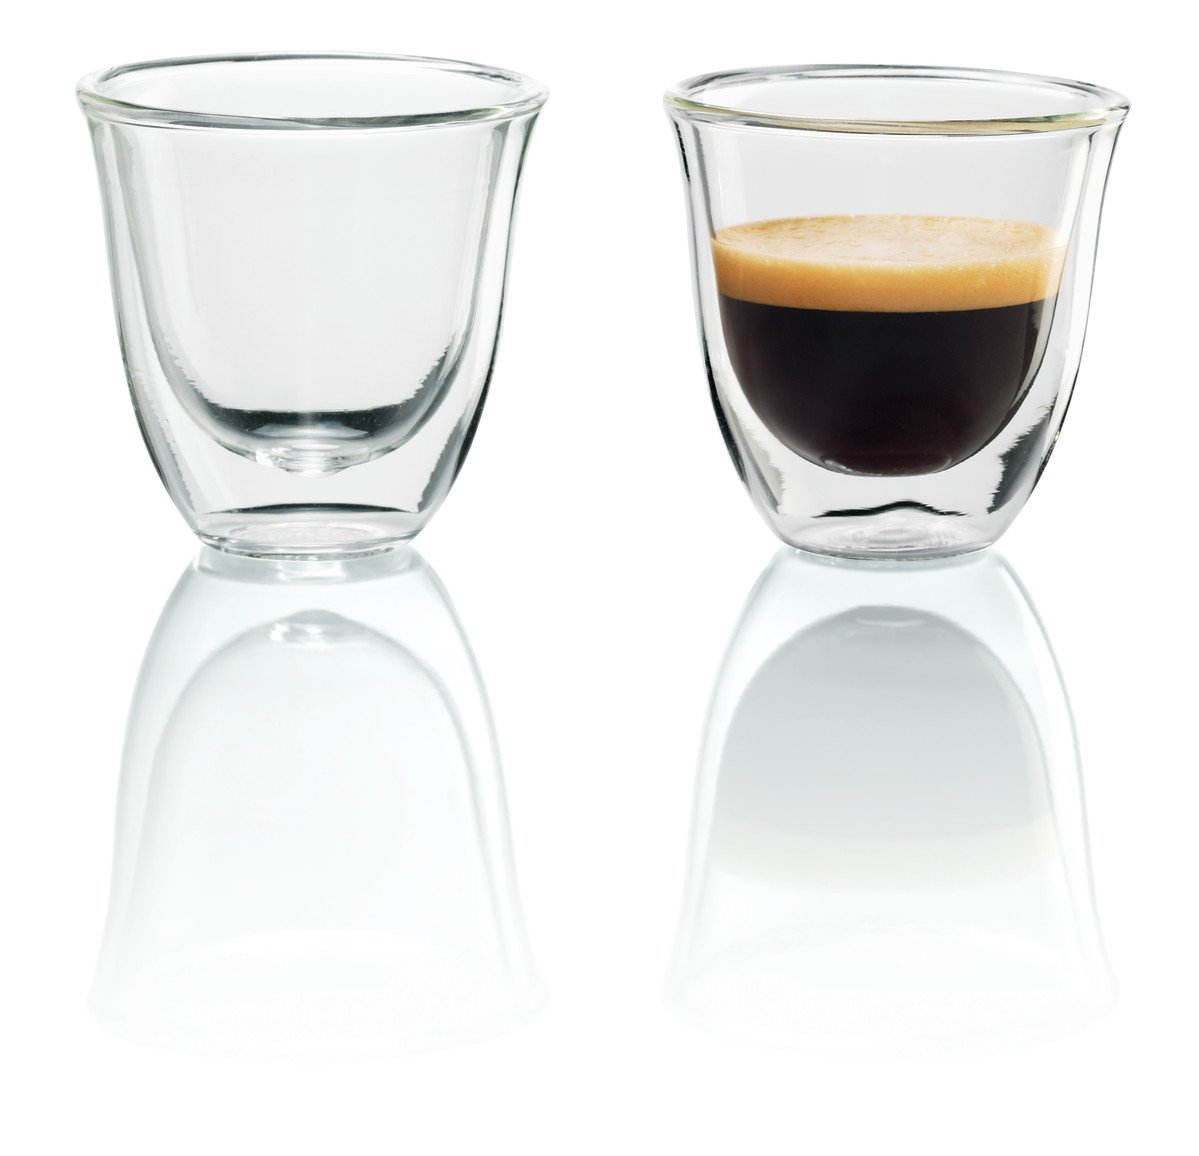 Delonghi 5513214591 Espresso Thermo Glasses - Pack of 2 5513214591_N/A